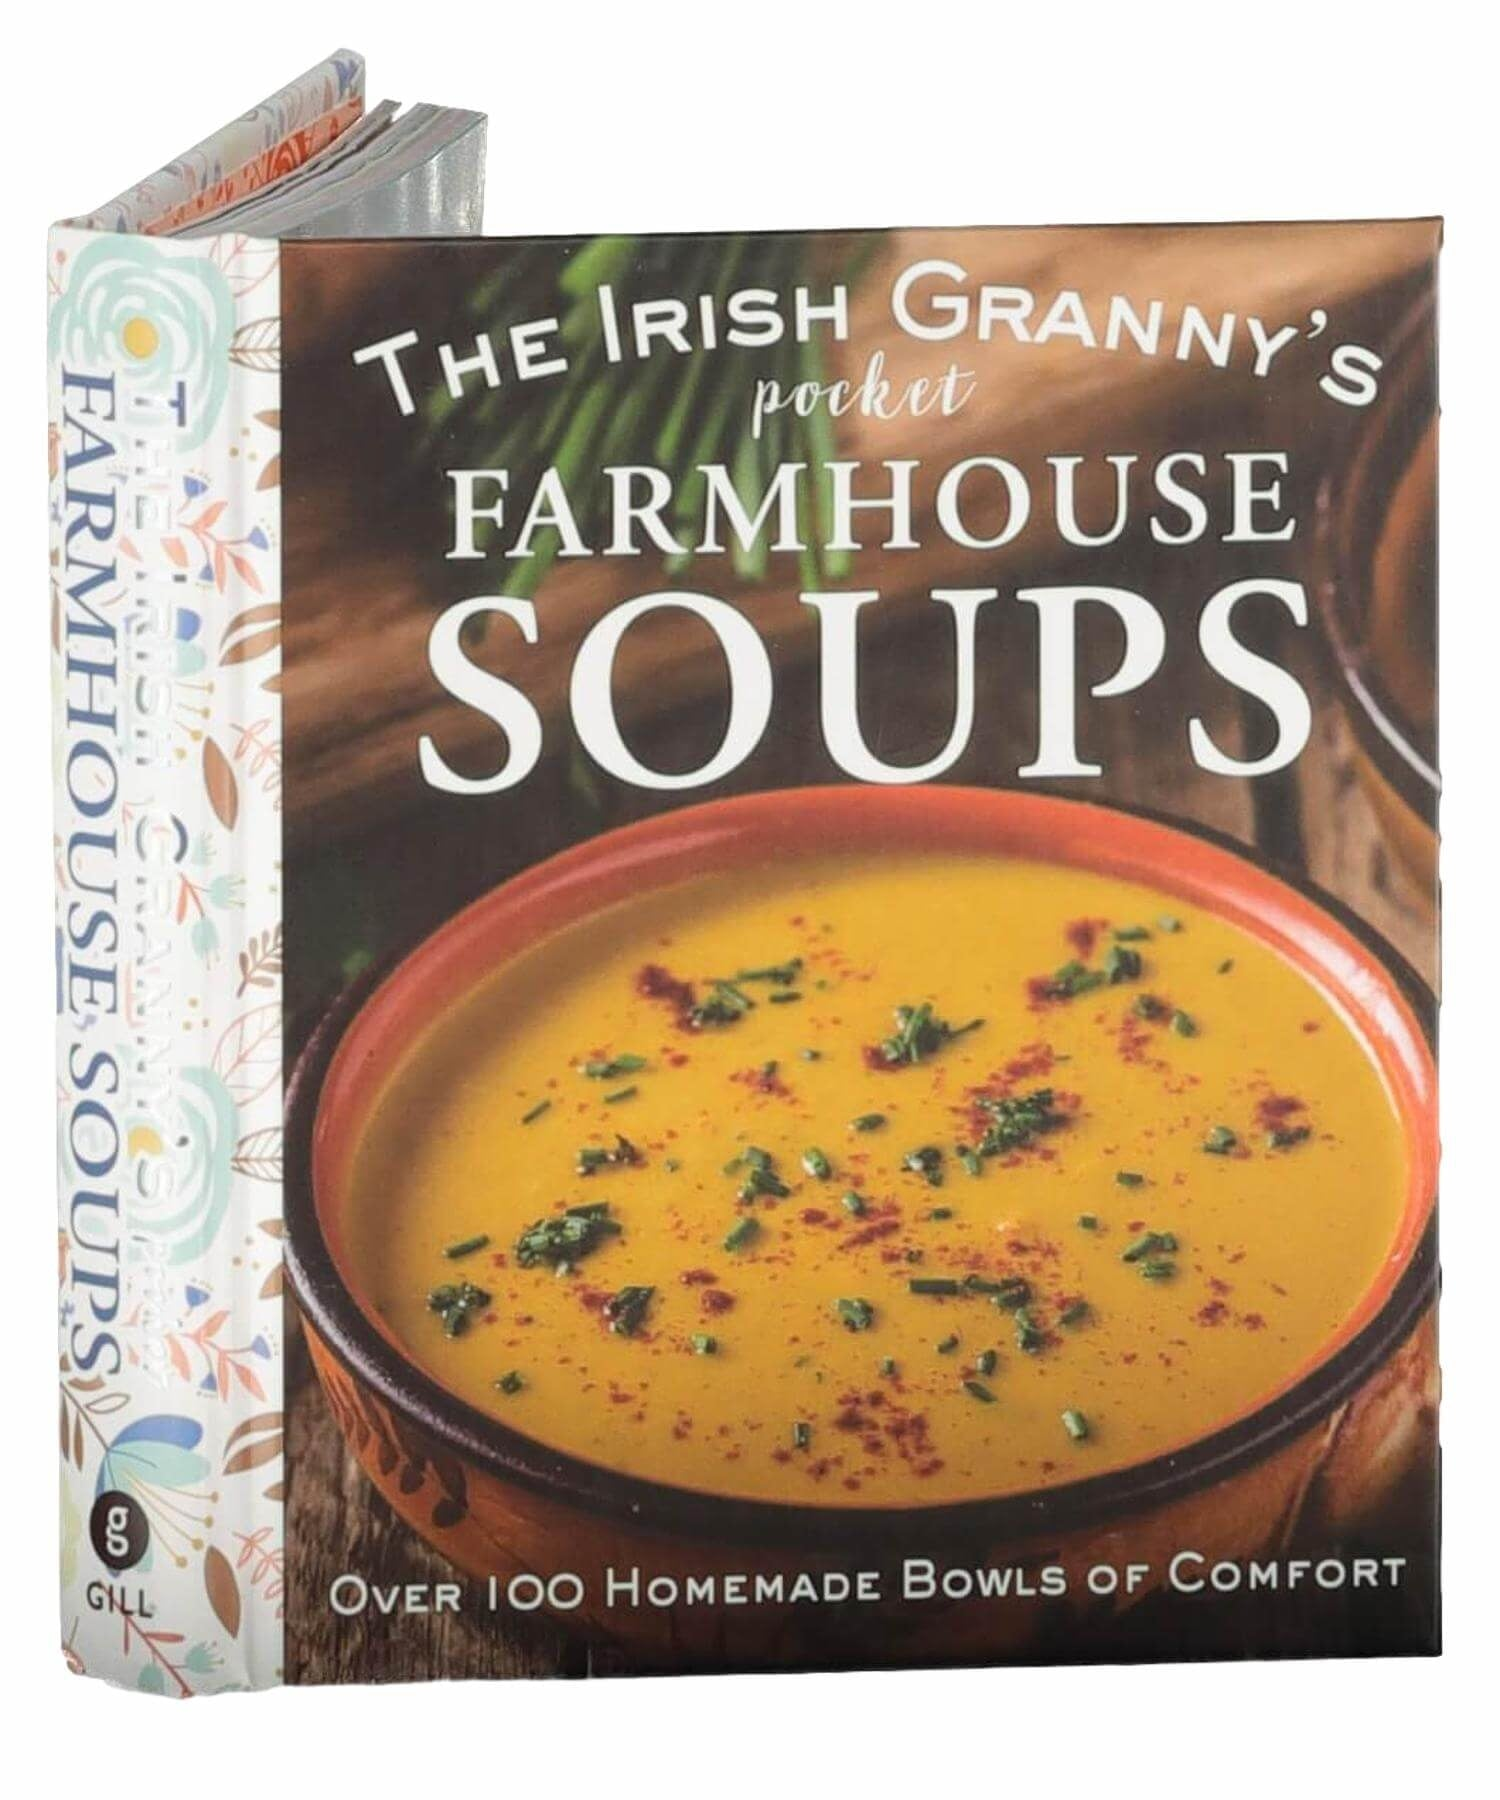 Pocket - Farmhouse Soups - [Gill & MacMillan] - Books & Stationery - Irish Gifts